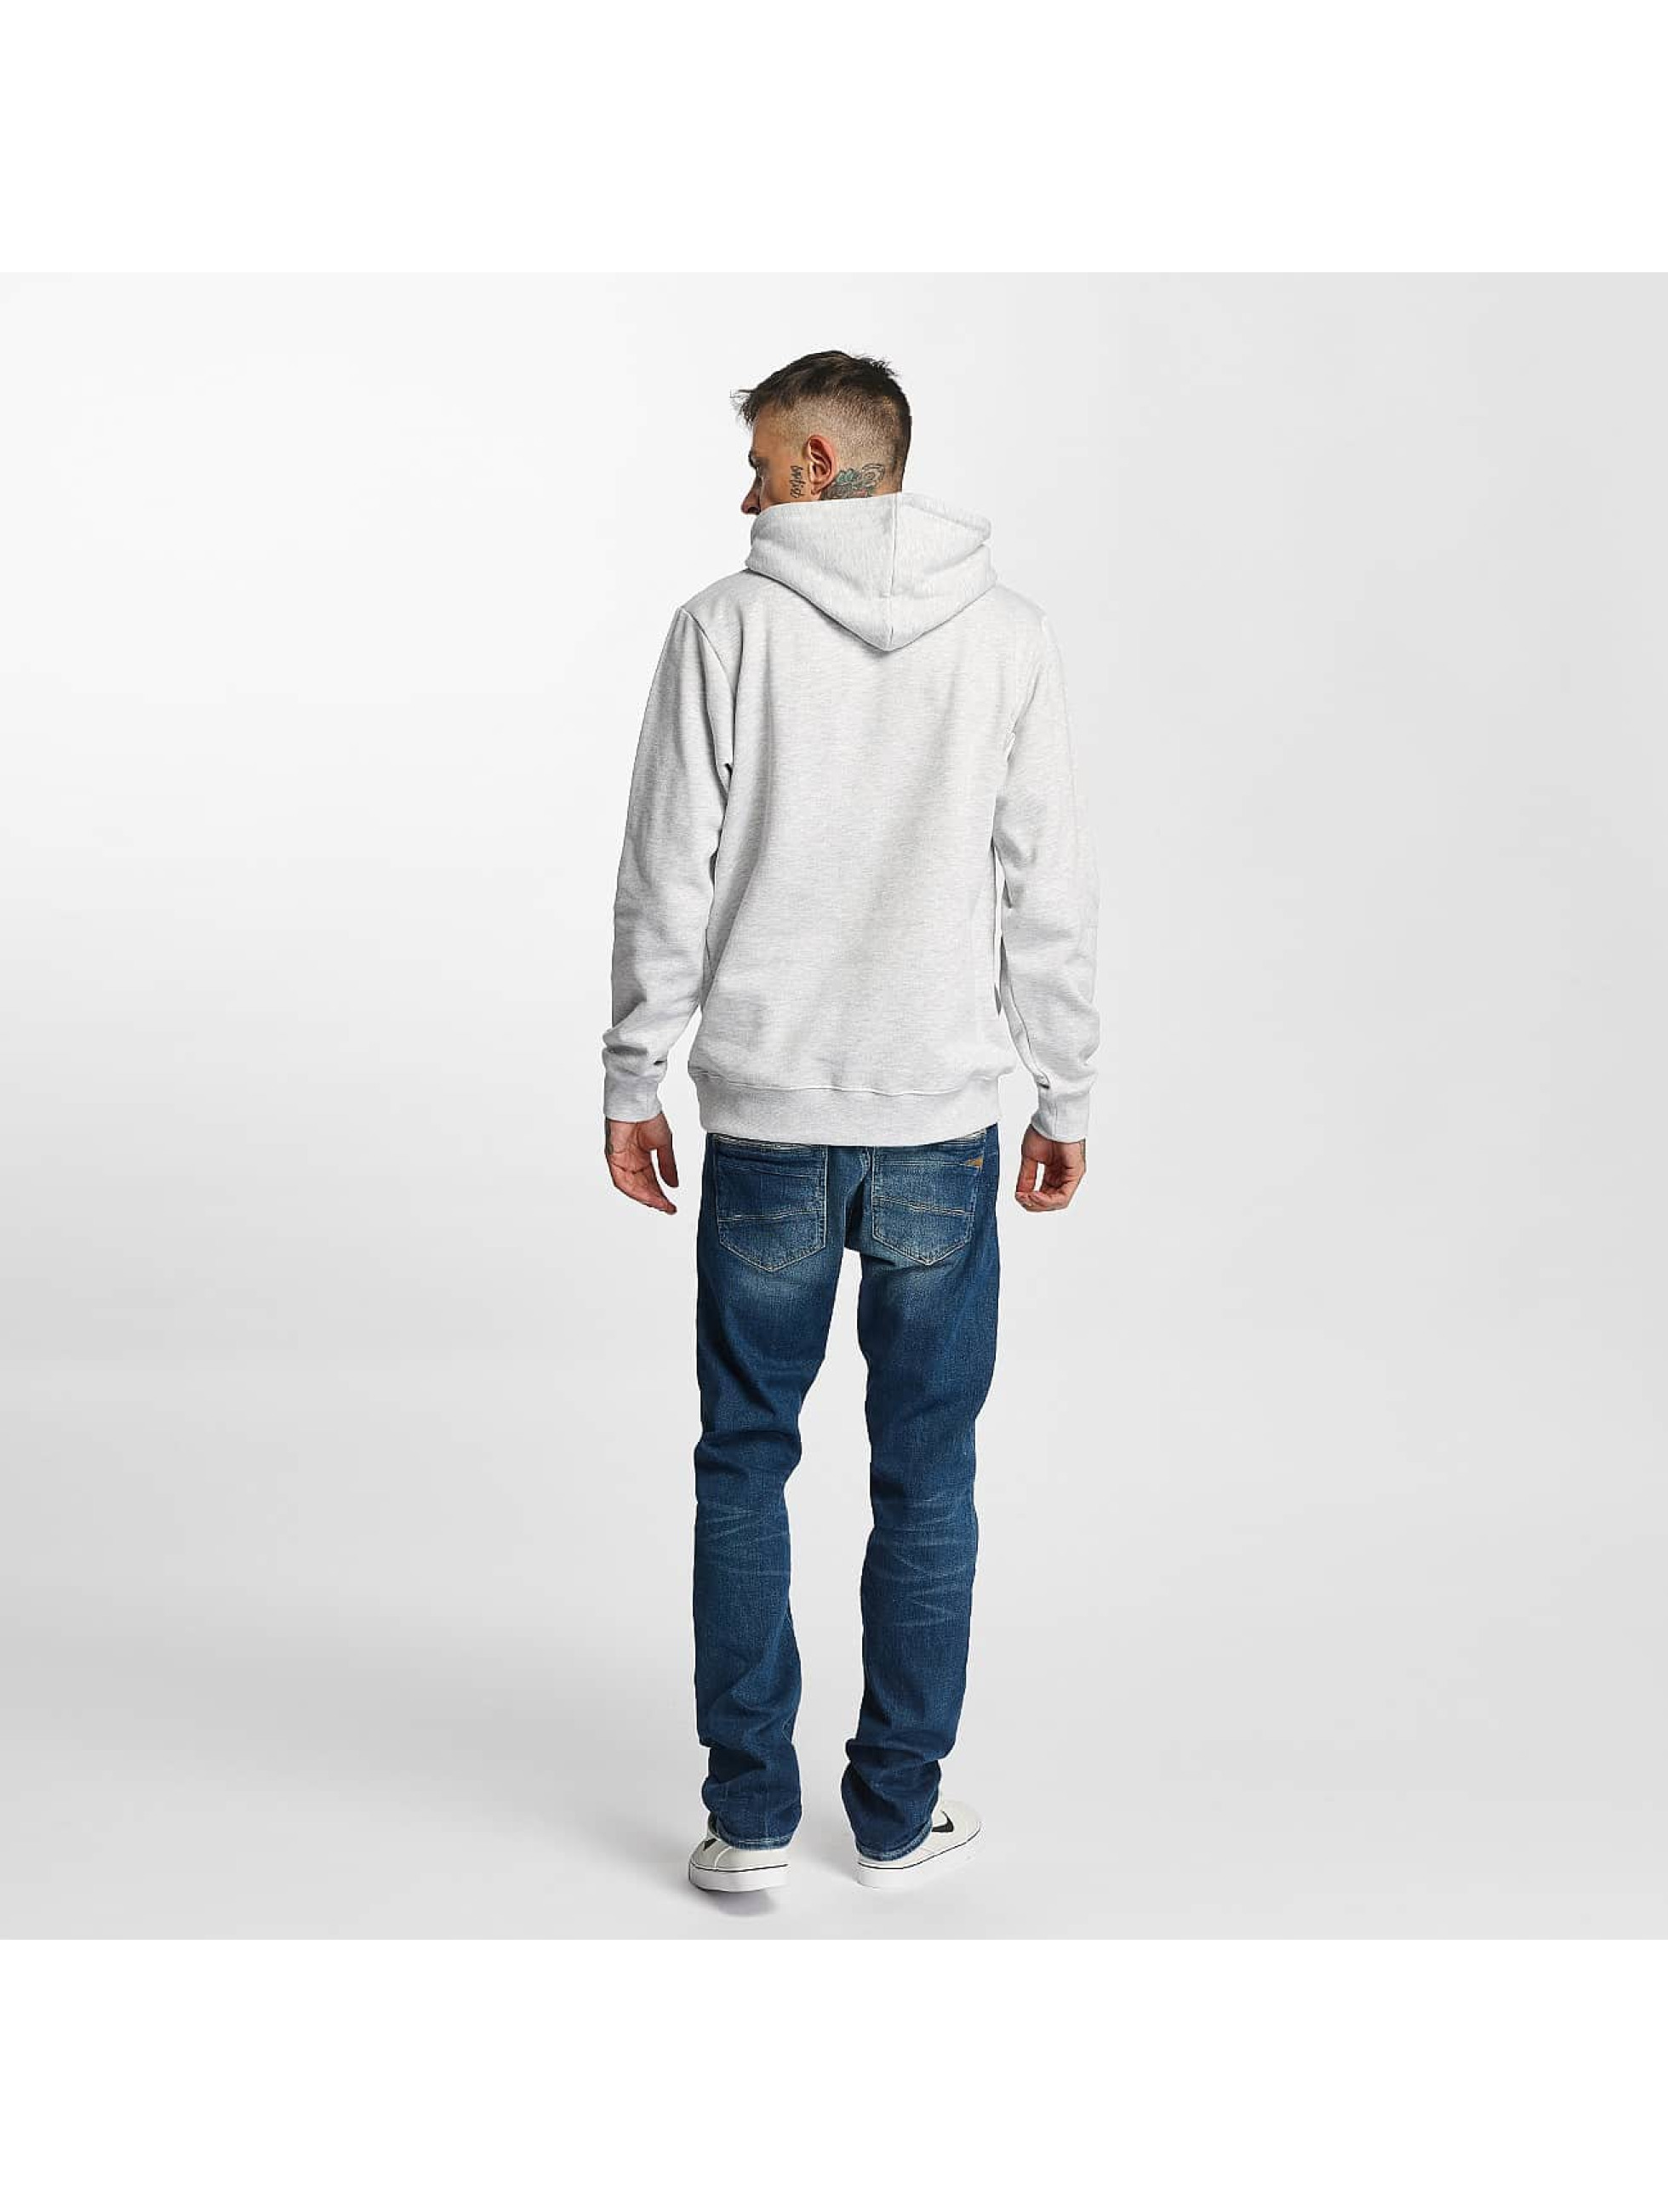 Tealer Hoodie Glitch Color gray